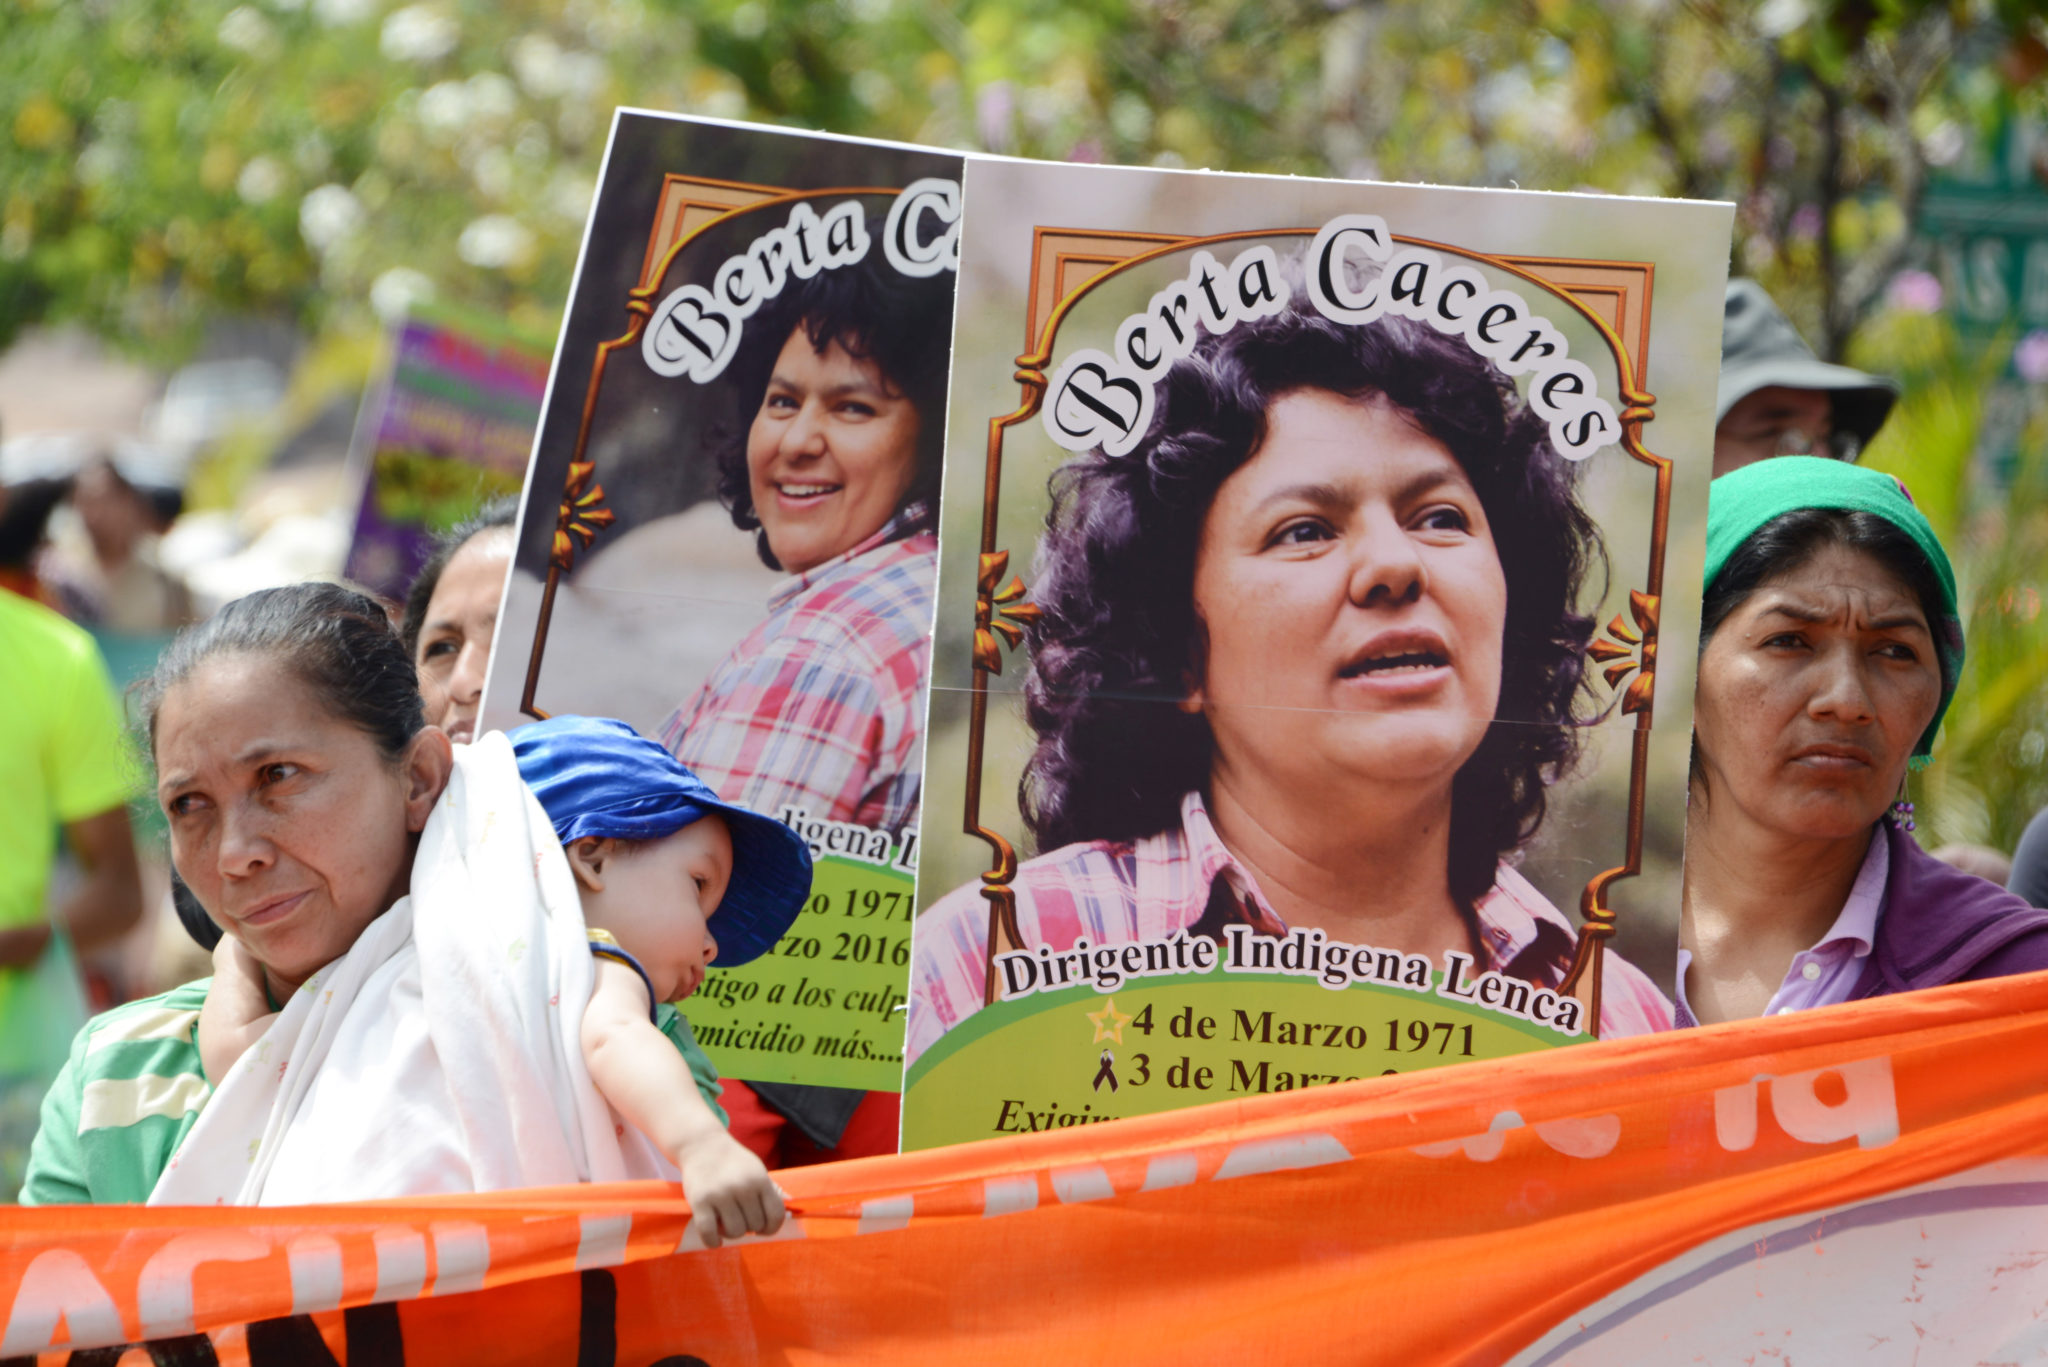 Honduras: Failure to identify those behind Berta Cáceres' murder puts other activists at risk